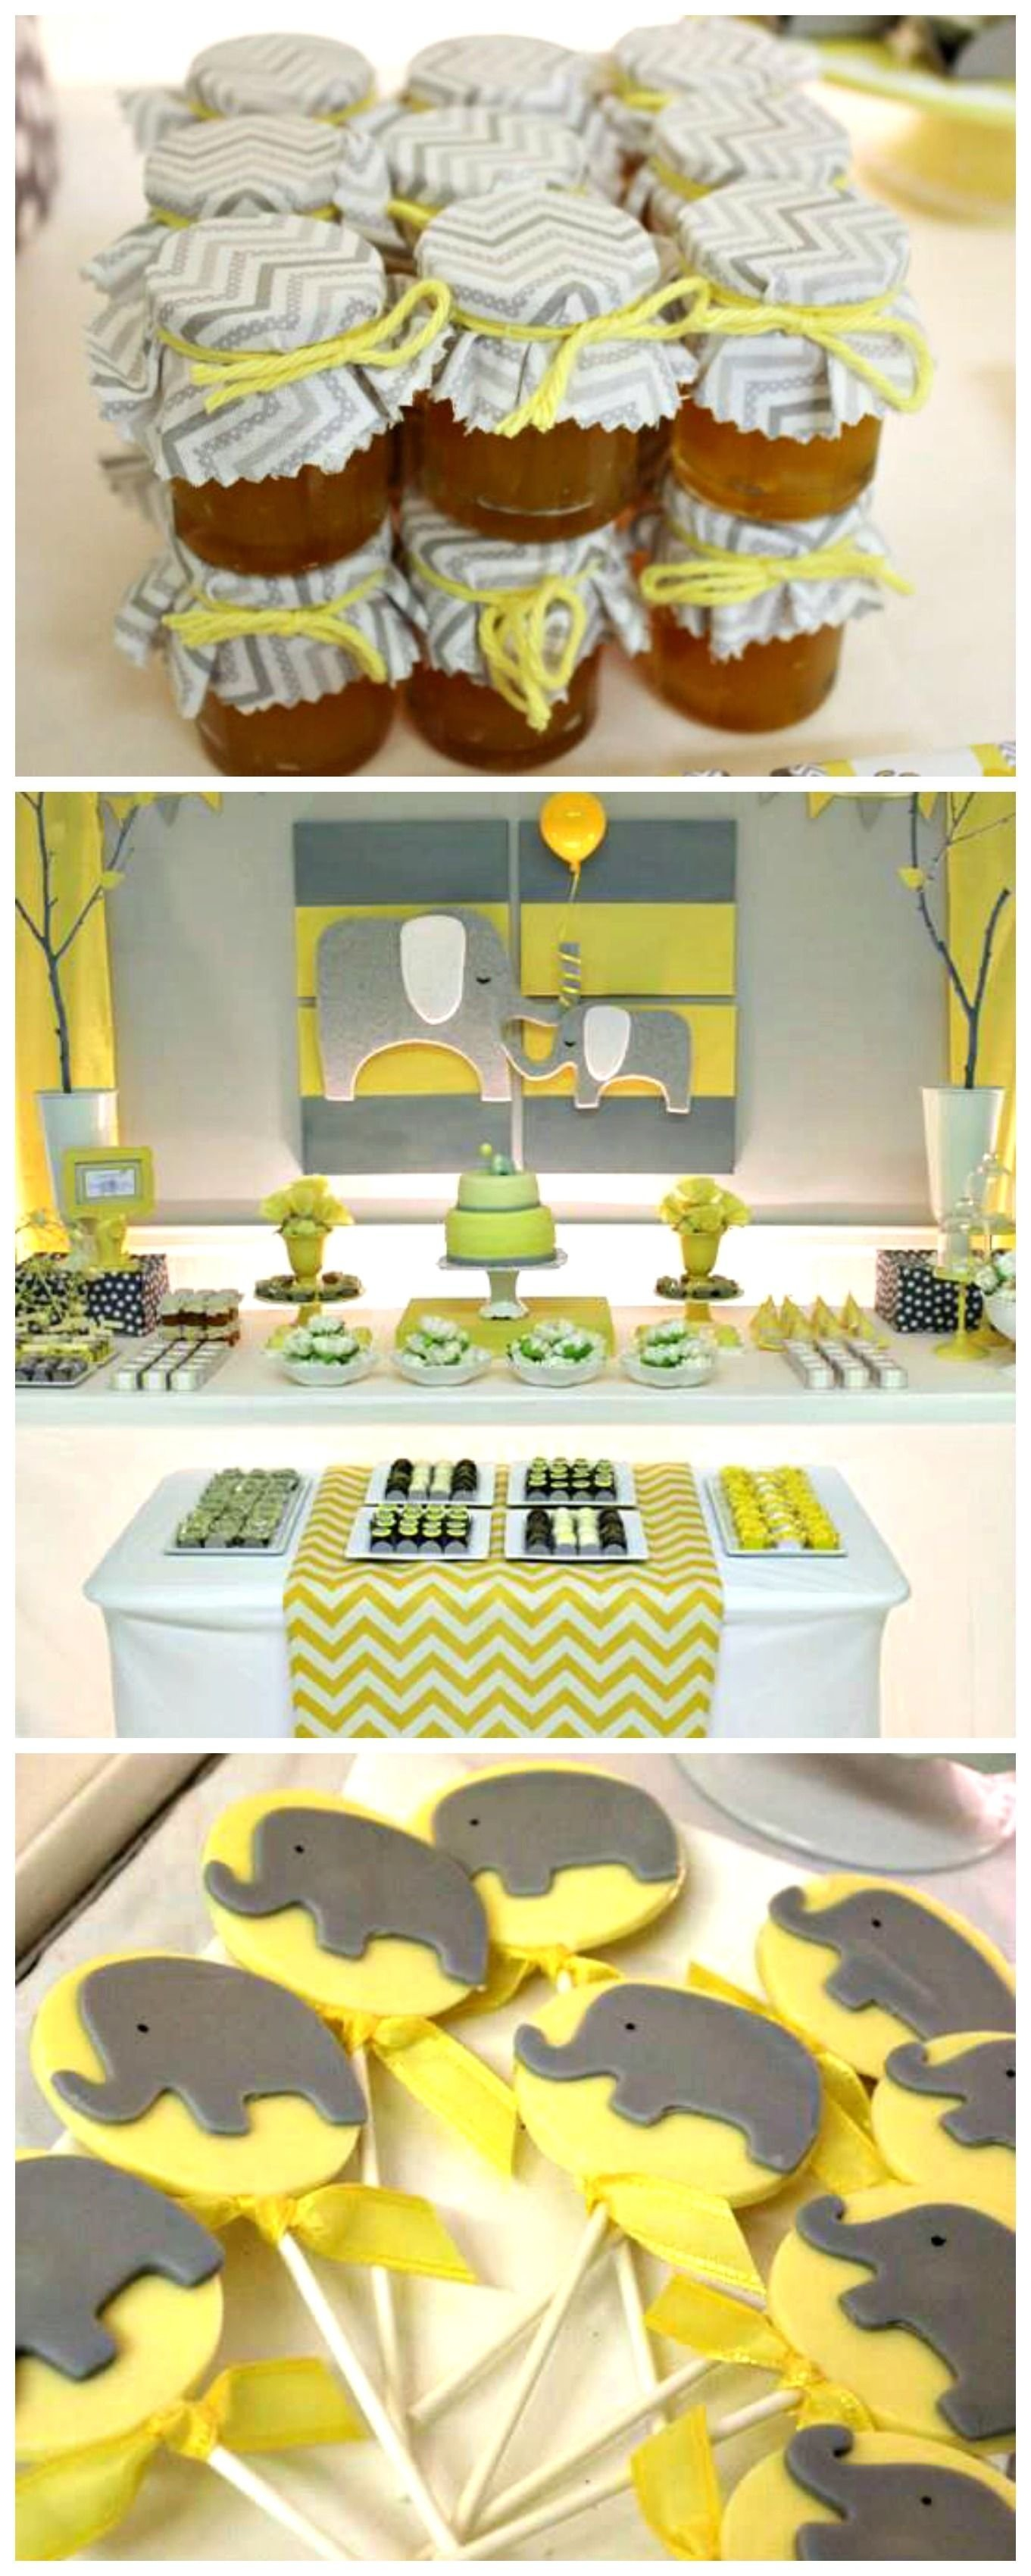 10 Trendy Yellow And Gray Baby Shower Ideas yellow gray chevron baby shower ideas elephant theme gunner 2020